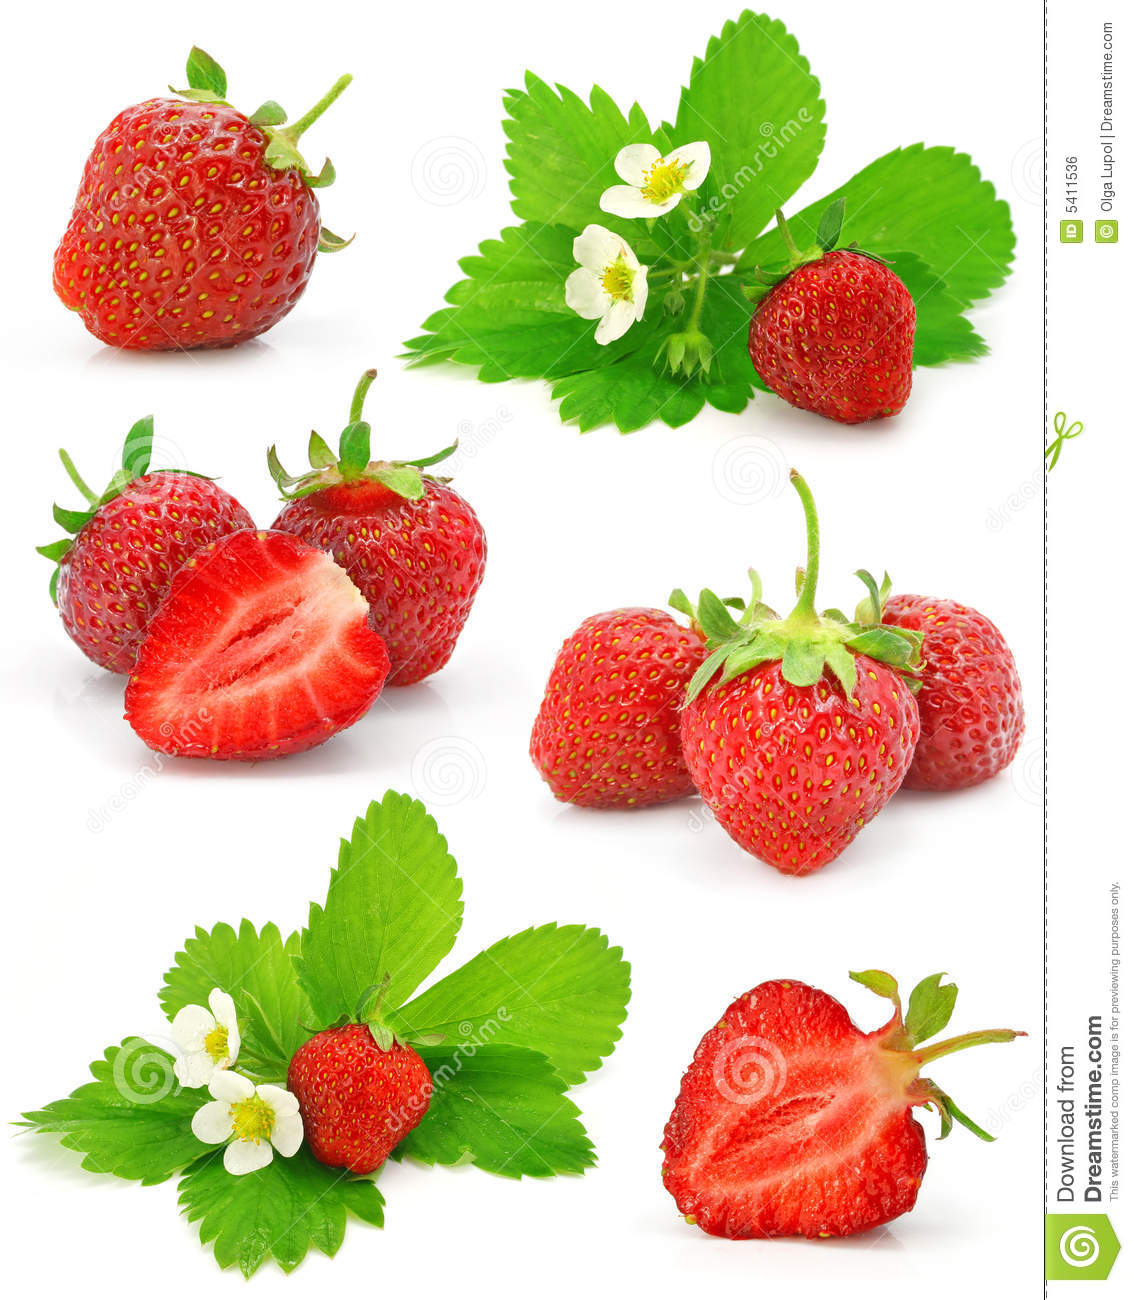 Ramassage de fruits rouges de fraise d isolement